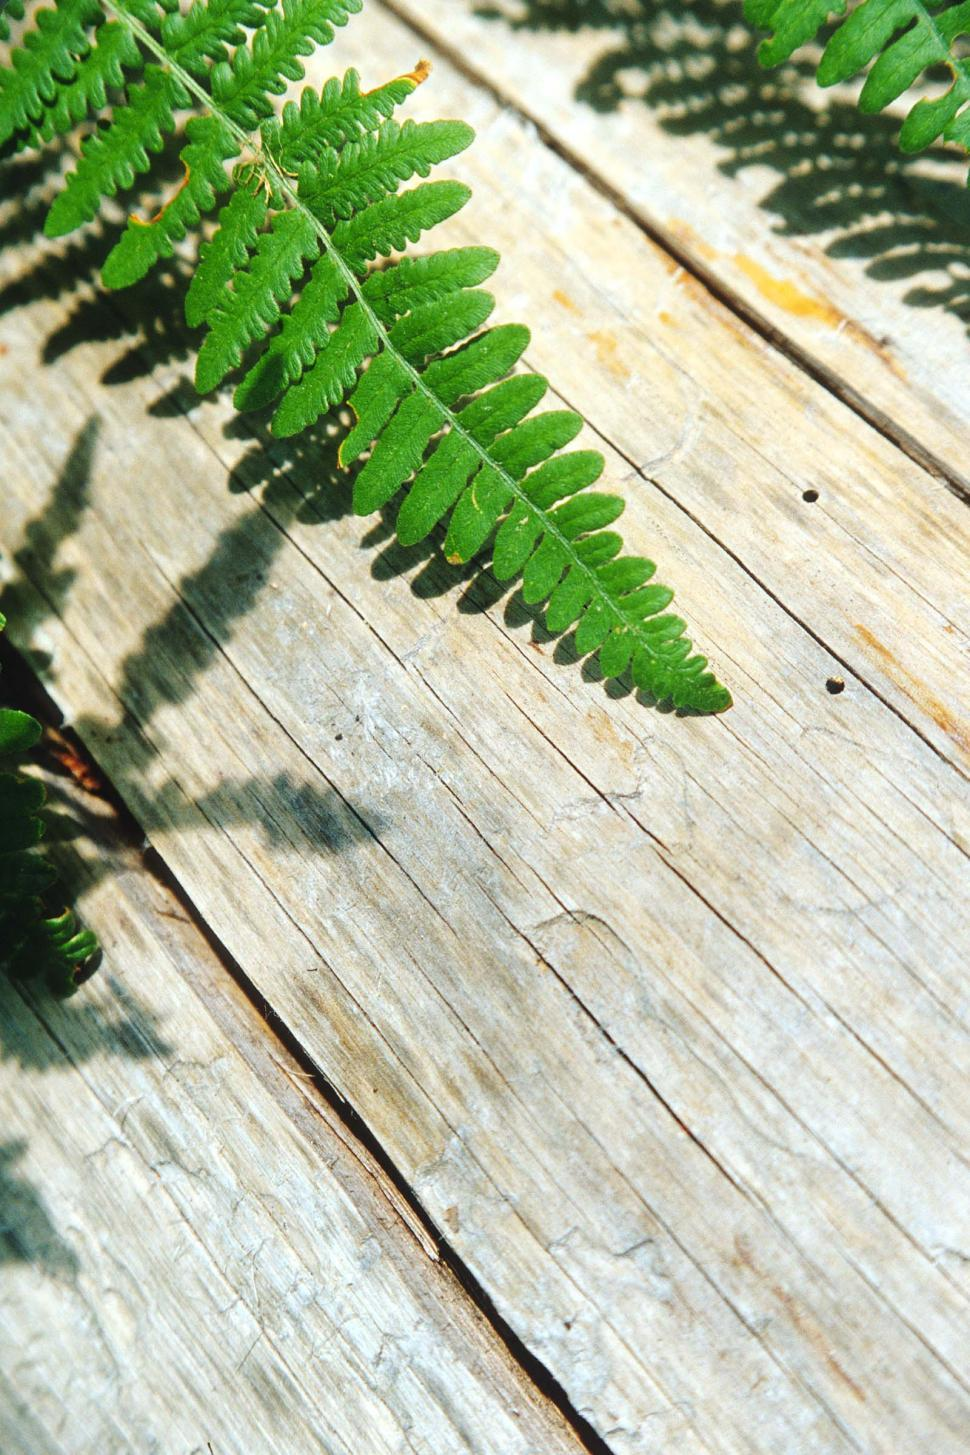 Download Free Stock HD Photo of Fern leaves on bleached wood Online